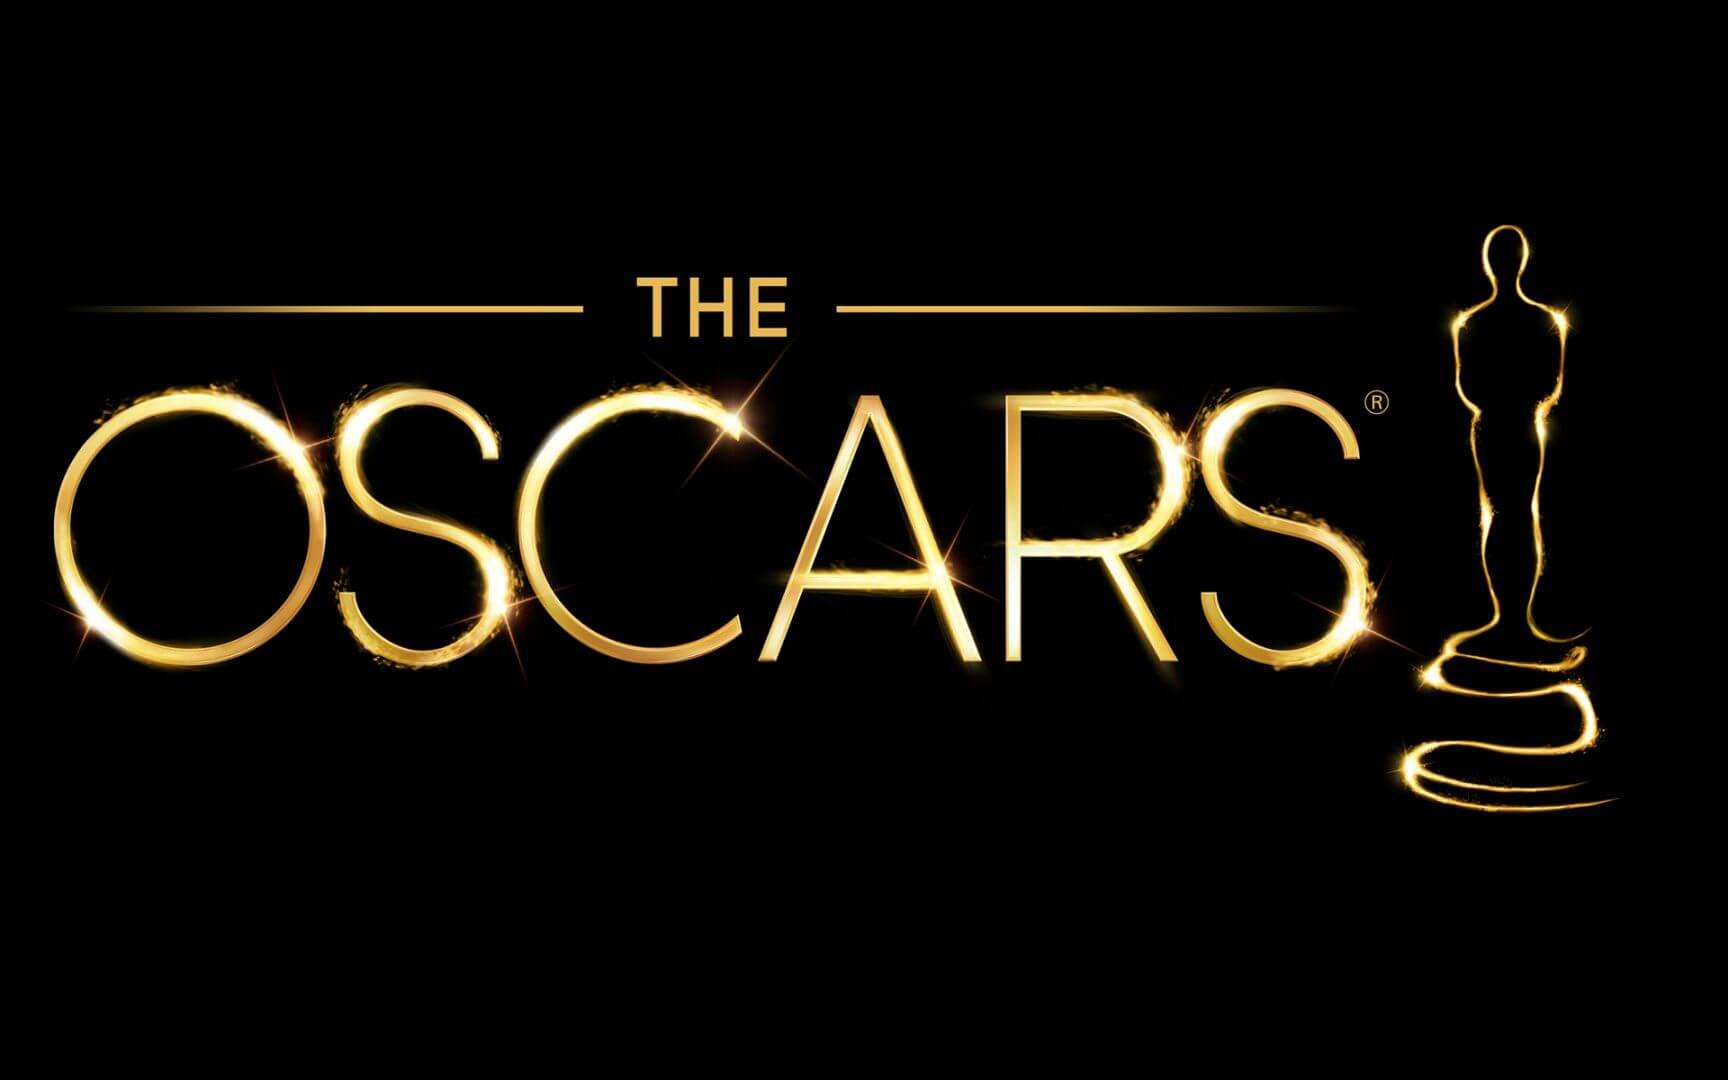 5 Upcoming Movie Roles That Could Be Oscar Winners: Part I